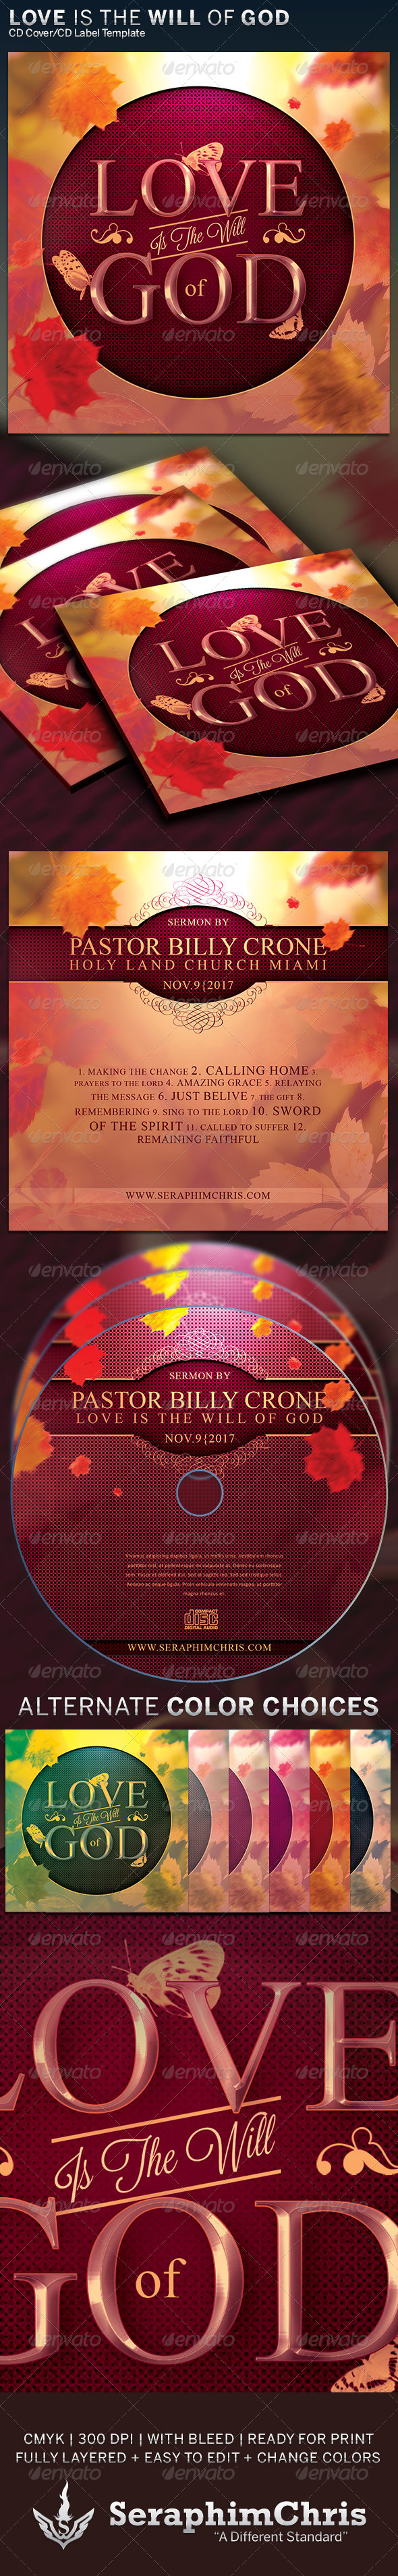 Love is the Will of God: CD Cover Artwork Template - CD & DVD Artwork Print Templates